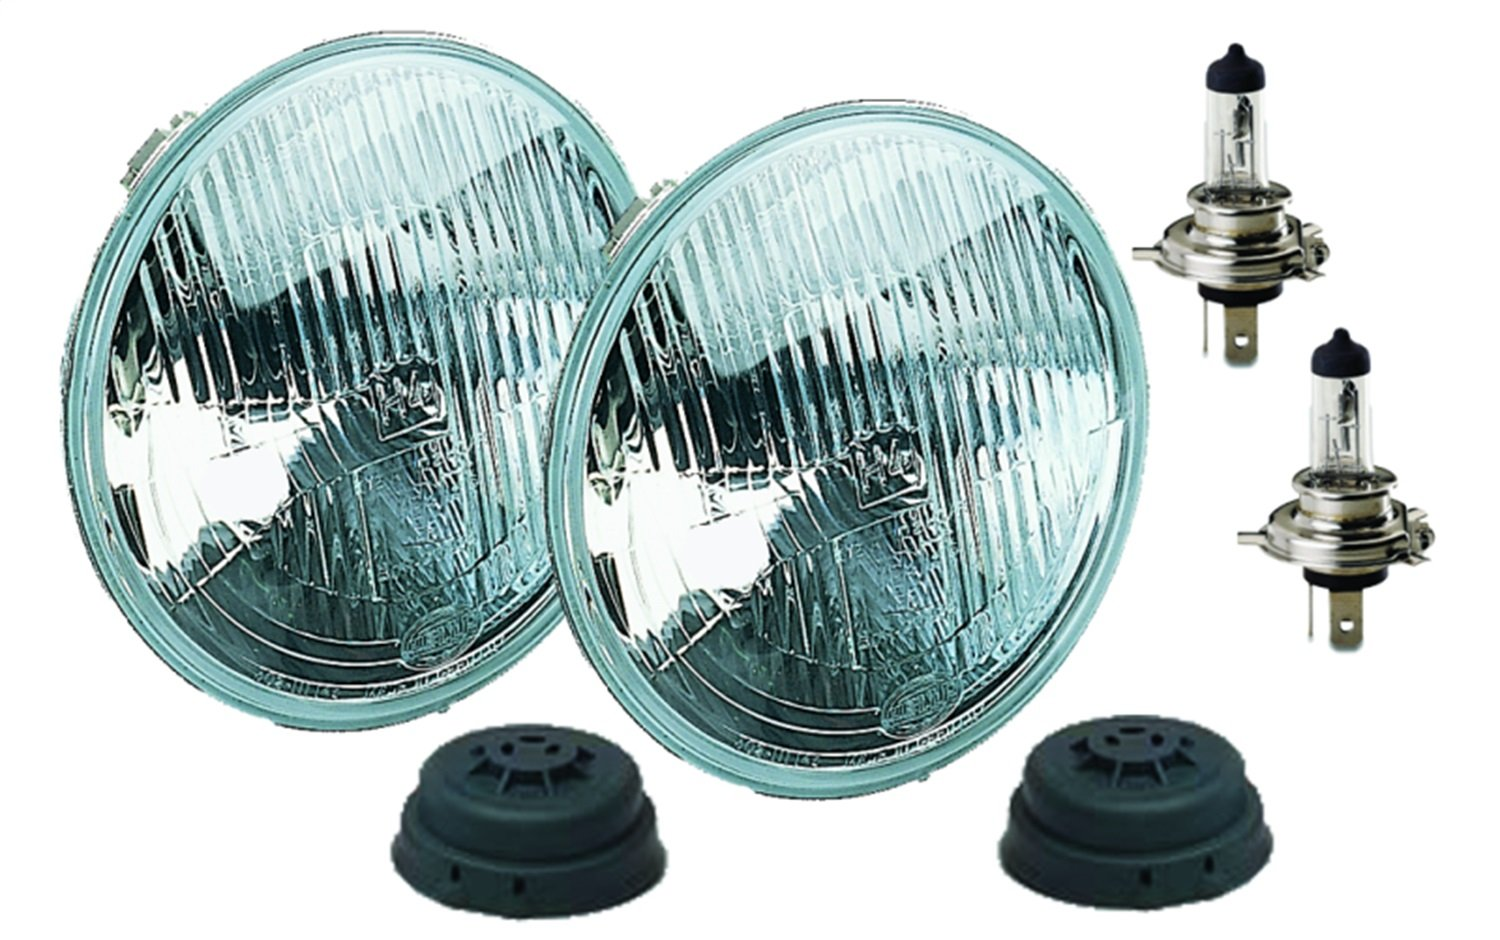 HELLA 002395301 Vision Plus 176mm High/Low Beam 12V Halogen Conversion Headlamp (HB2)